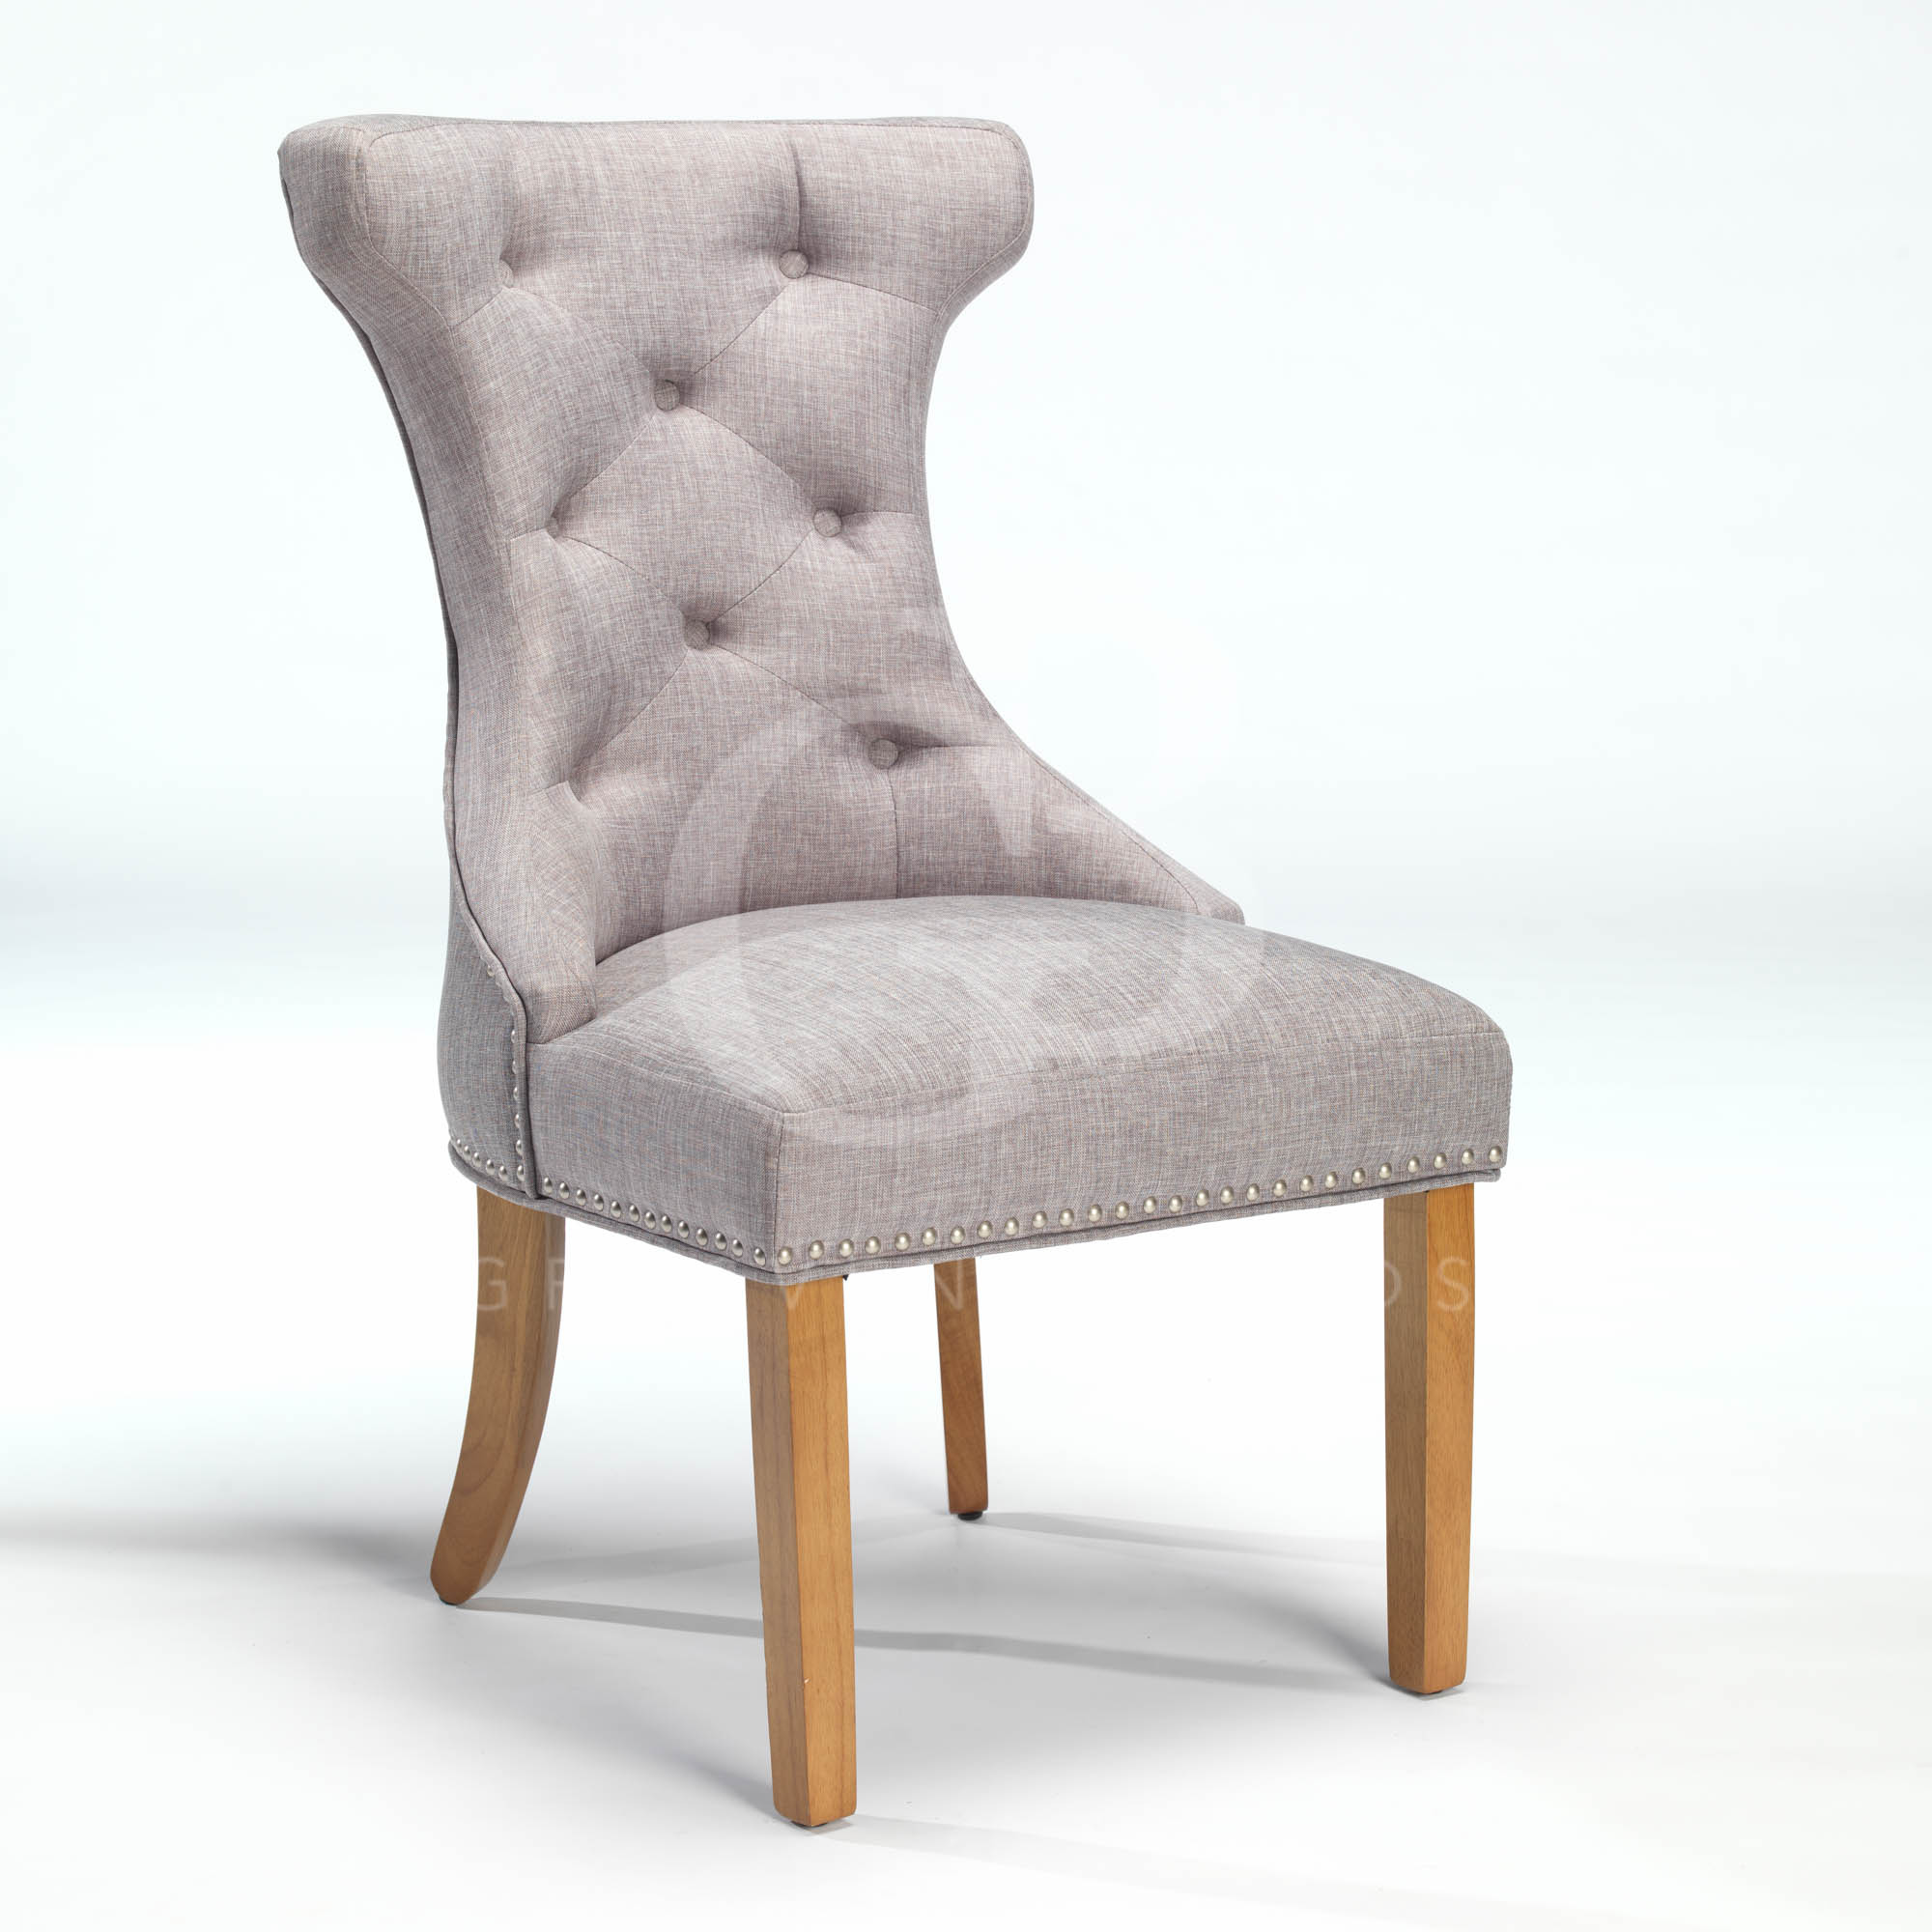 New upholstered wing back dining chair with nickel studs for Wing back dining chairs